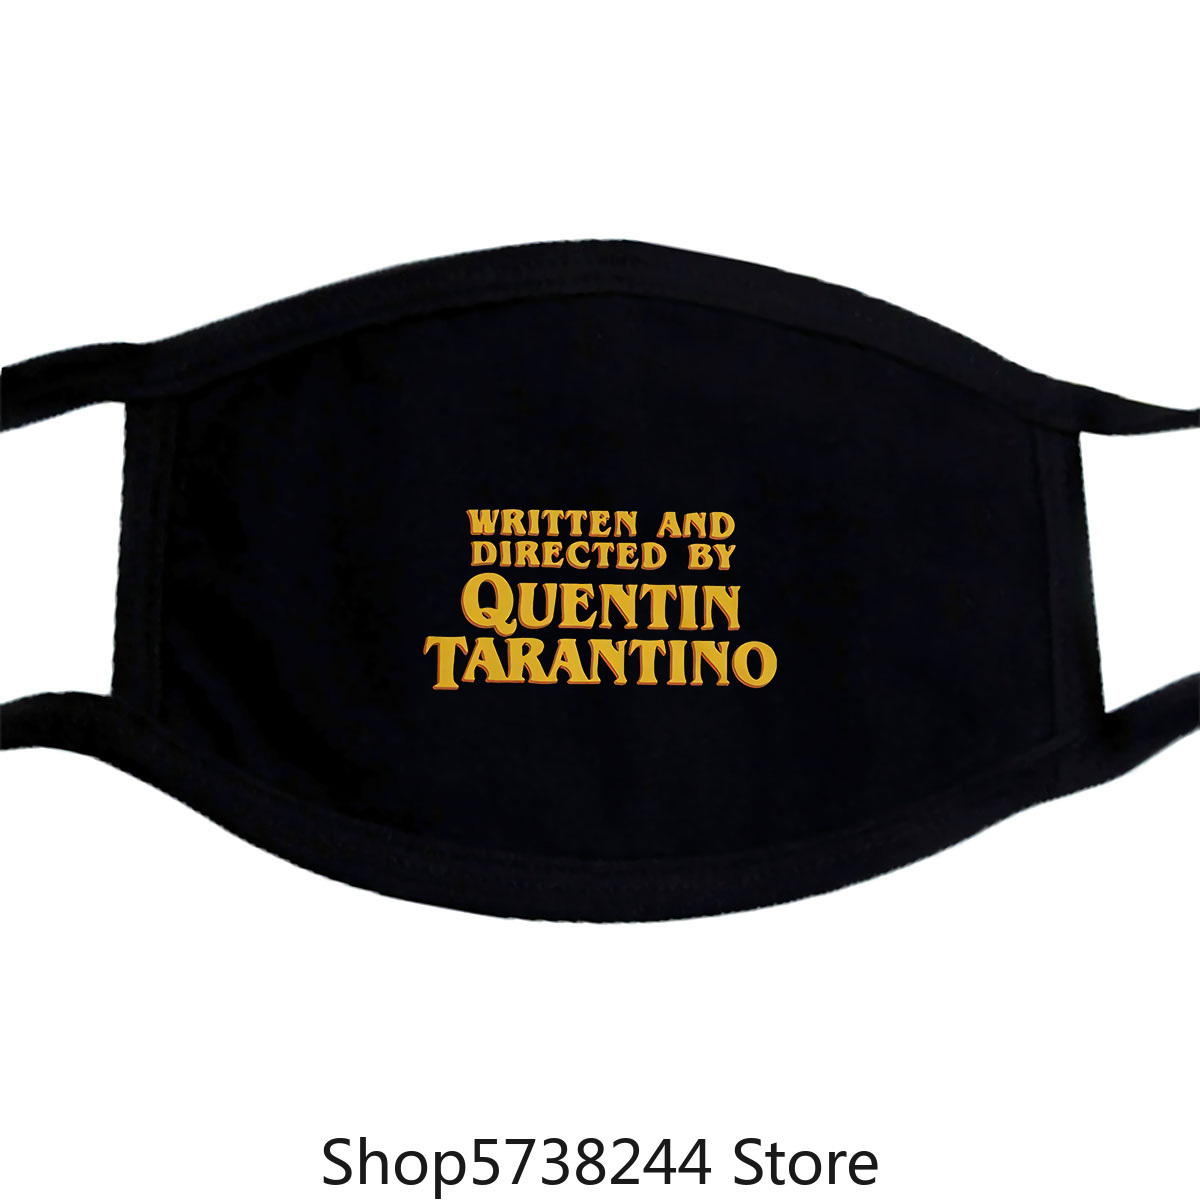 Written And Directed By Quentin Tarantino Mask Cotton Tee Washable Reusable Mask